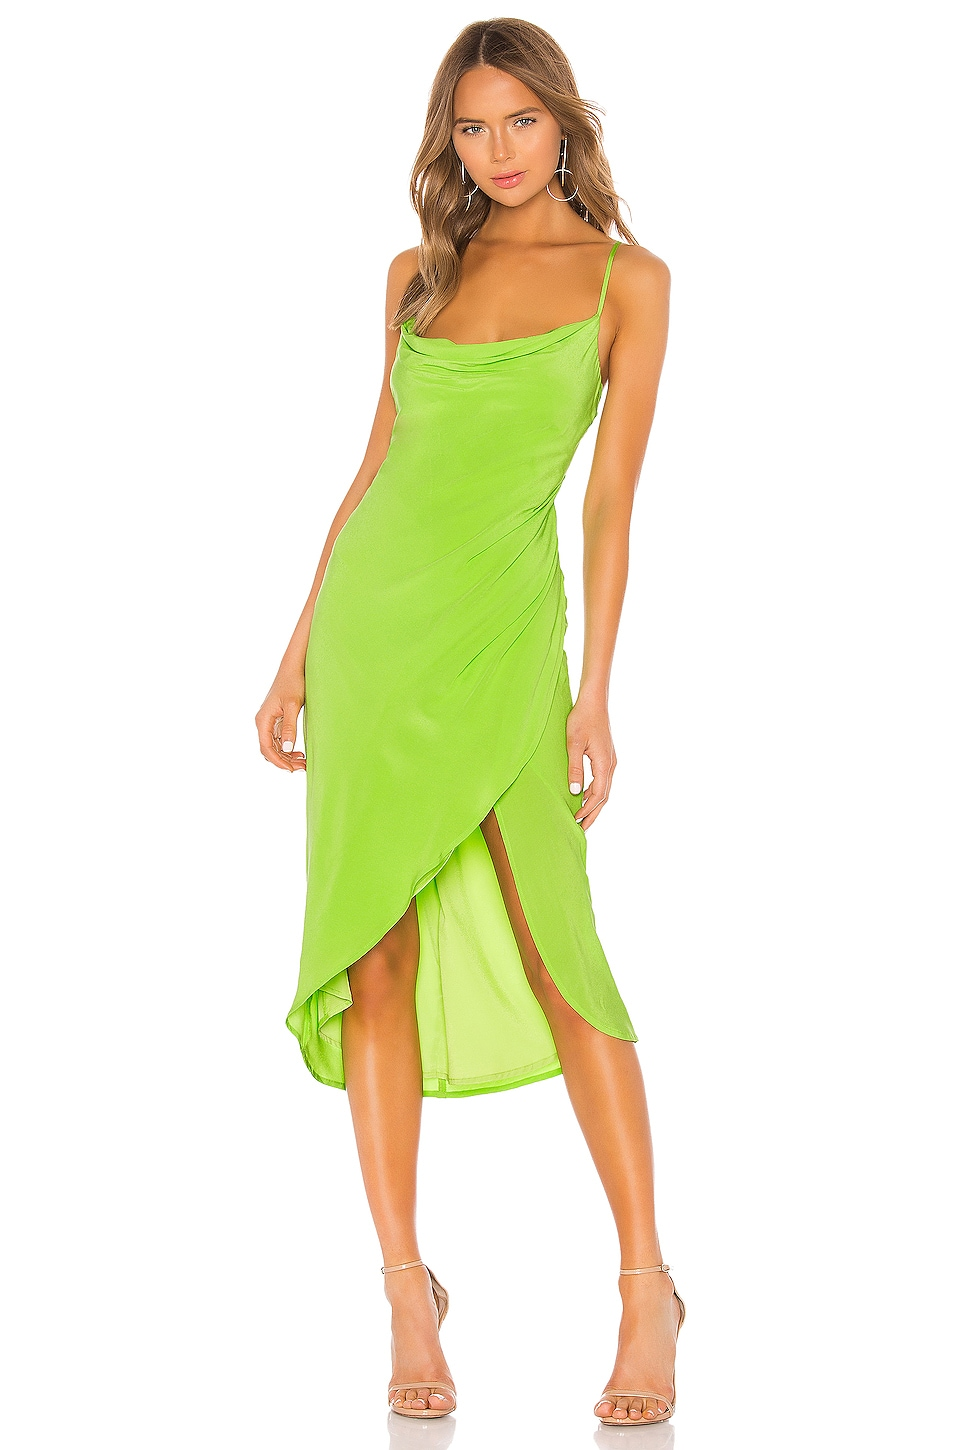 Lovers + Friends Noah Wrap Dress in Lime Green